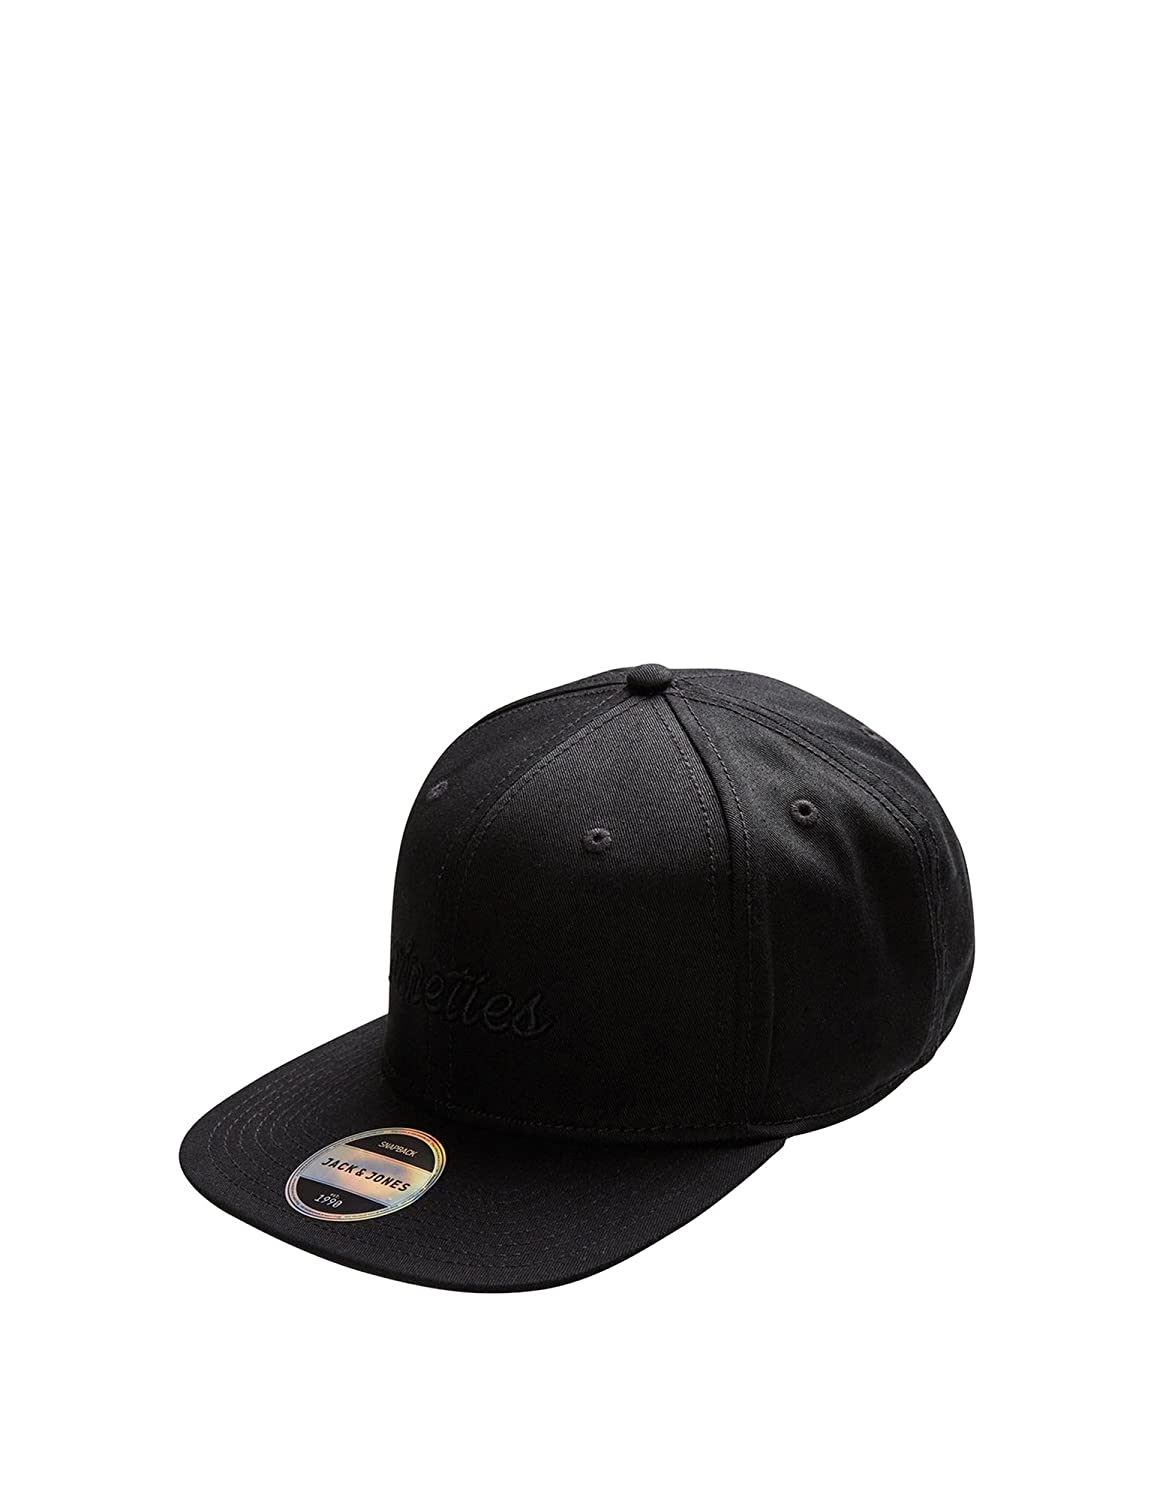 Jack & Jones - Jacsimple - Gorra - Black: Amazon.es: Deportes y ...